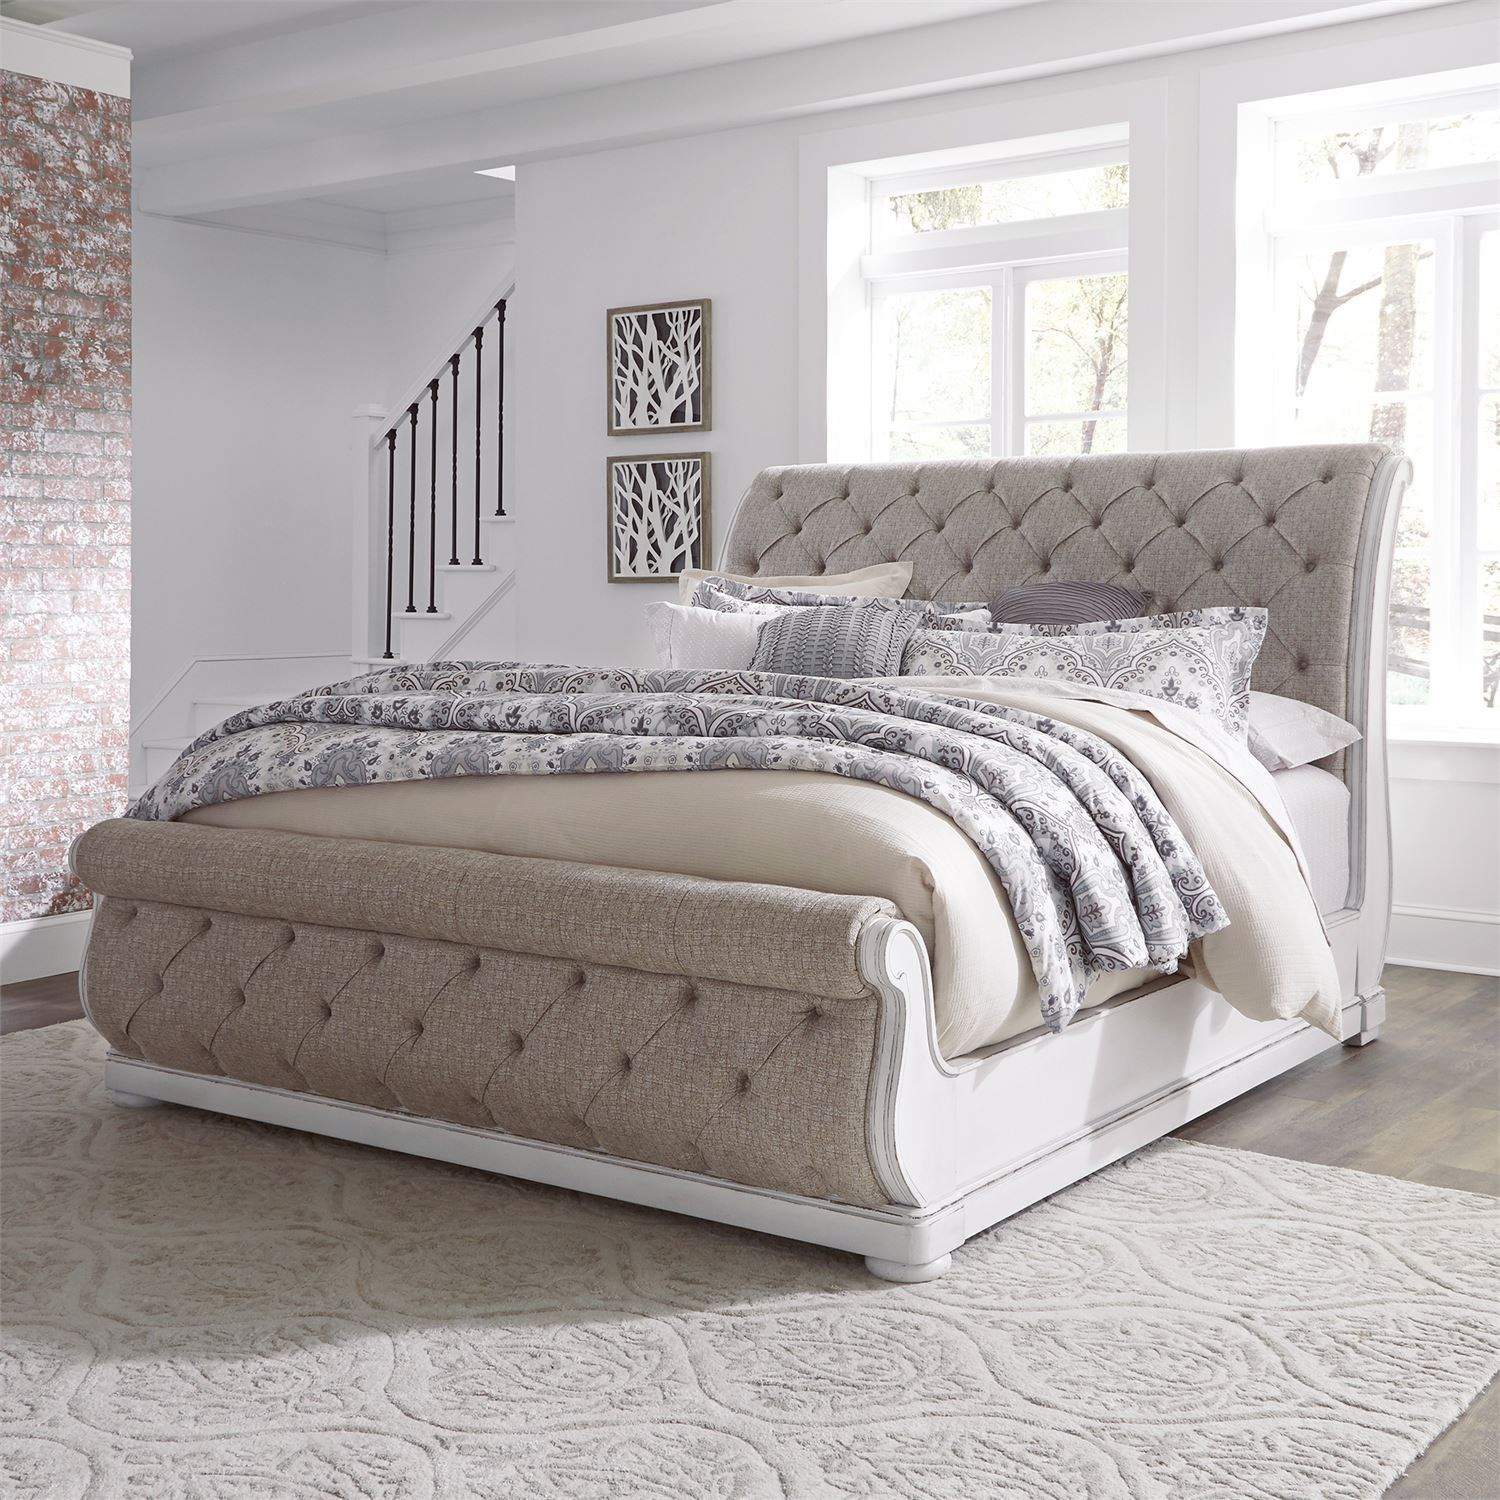 Magnolia Manor Queen Upholstered Sleigh Bed by Liberty Furniture at Bullard Furniture